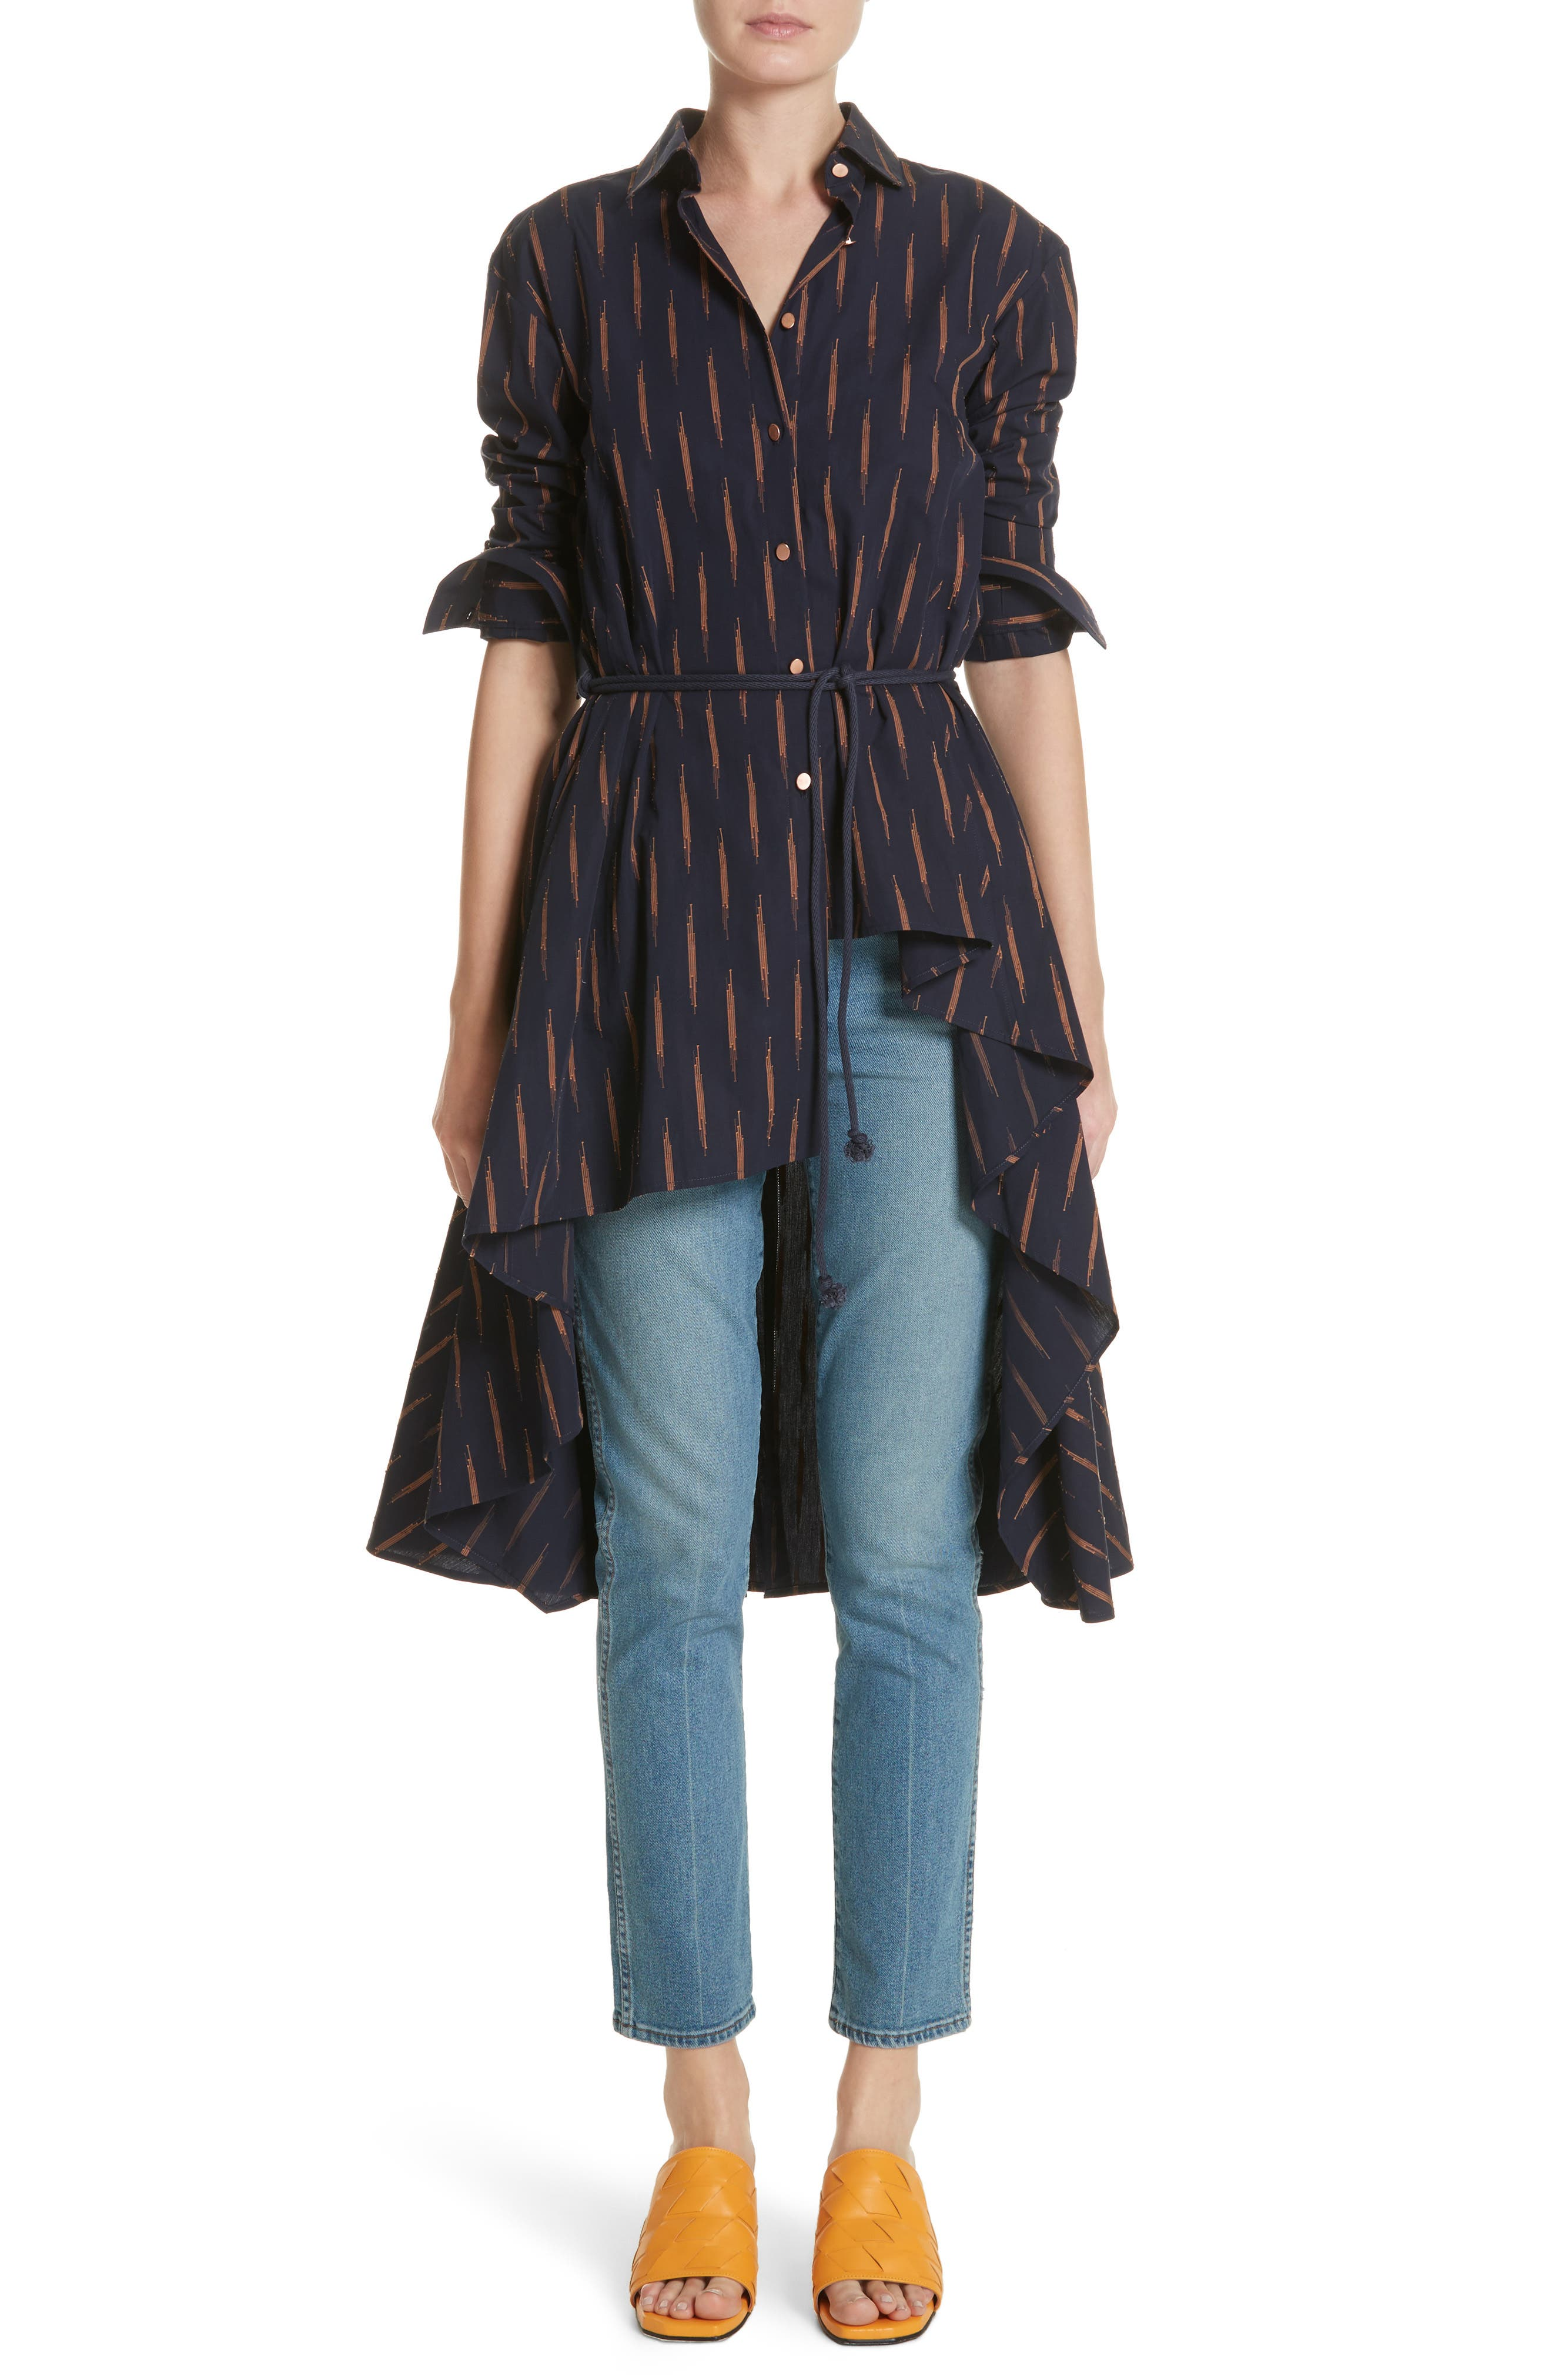 Sequel High/Low Shirt,                         Main,                         color, Navy Fireworks